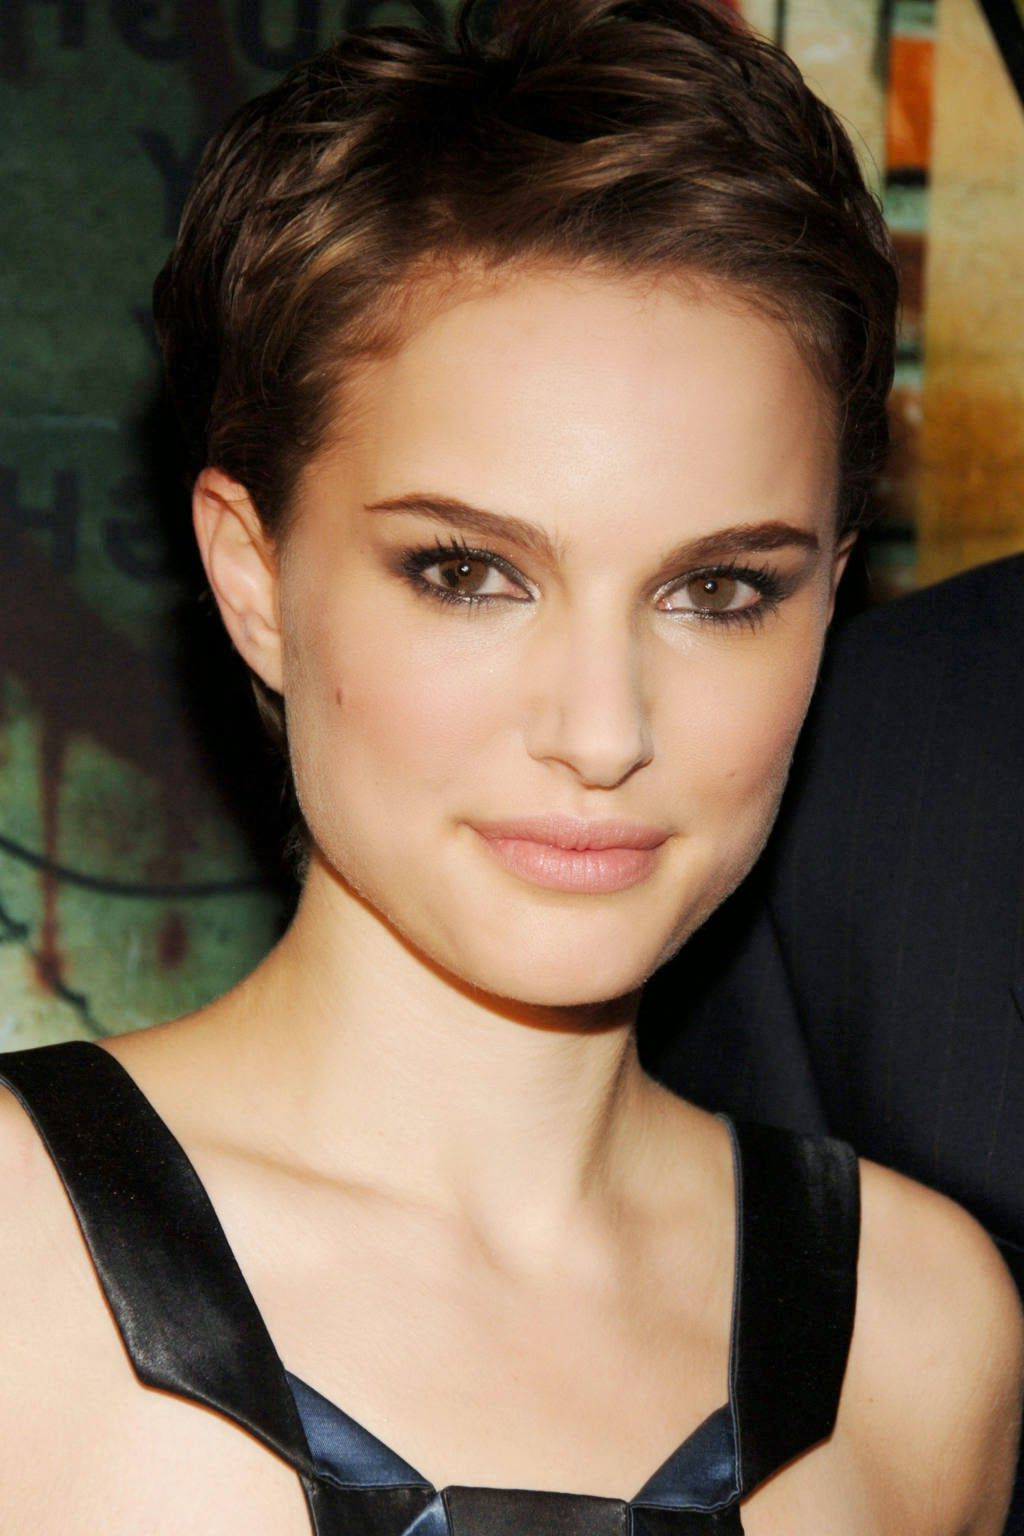 Image Result For Angelina Jolie Short Hair | Hairstyles | Pinterest With Regard To Angelina Jolie Short Hairstyles (View 10 of 25)